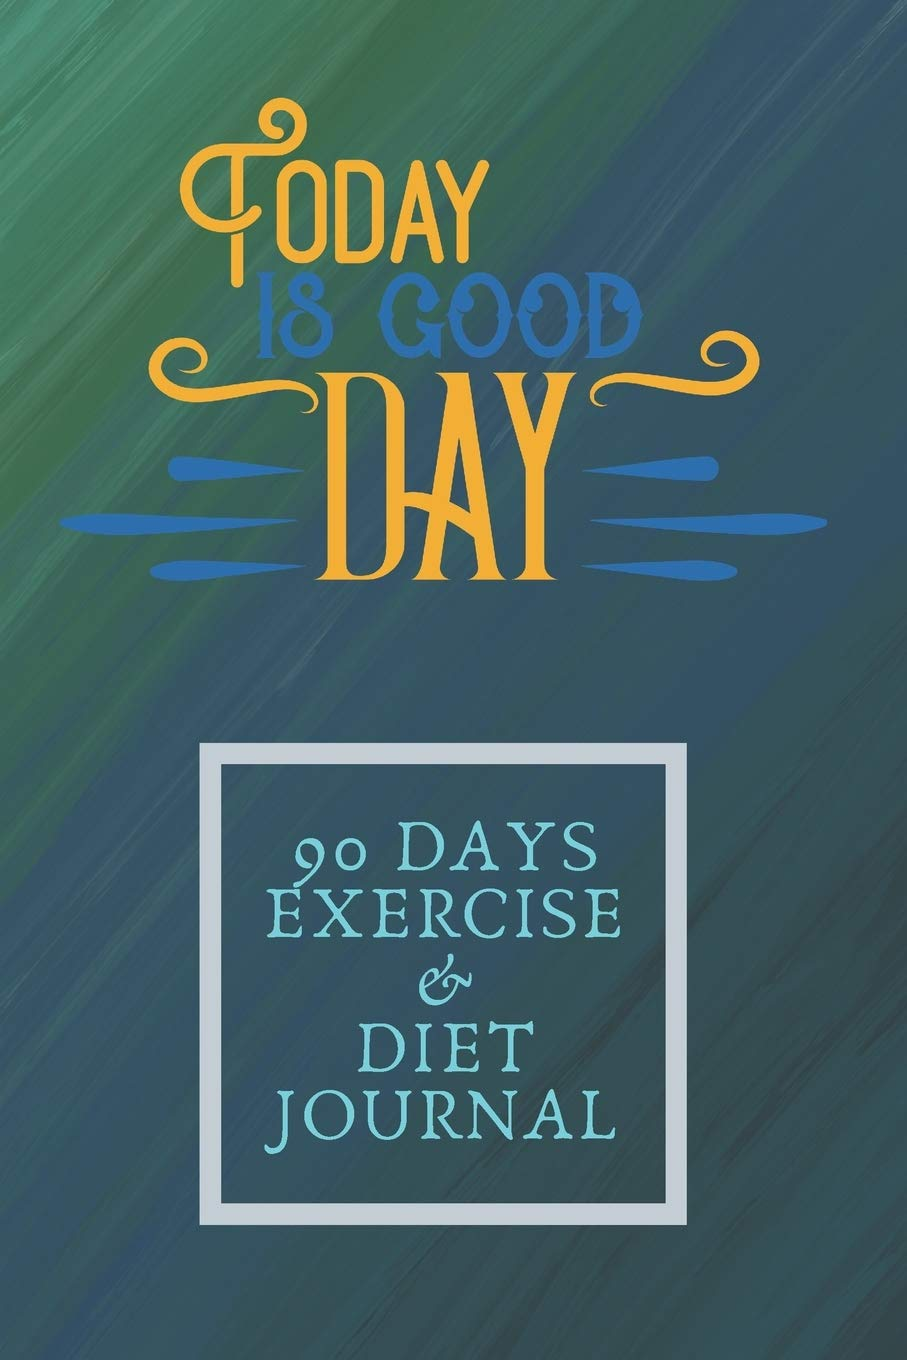 Today Is Good Day 90 Days Exercise Diet Journal 3 Months Food Journal And Fitness Tracker Keep Record Daily Track Eating Habits Activity Set Diet For Loss Weight Get